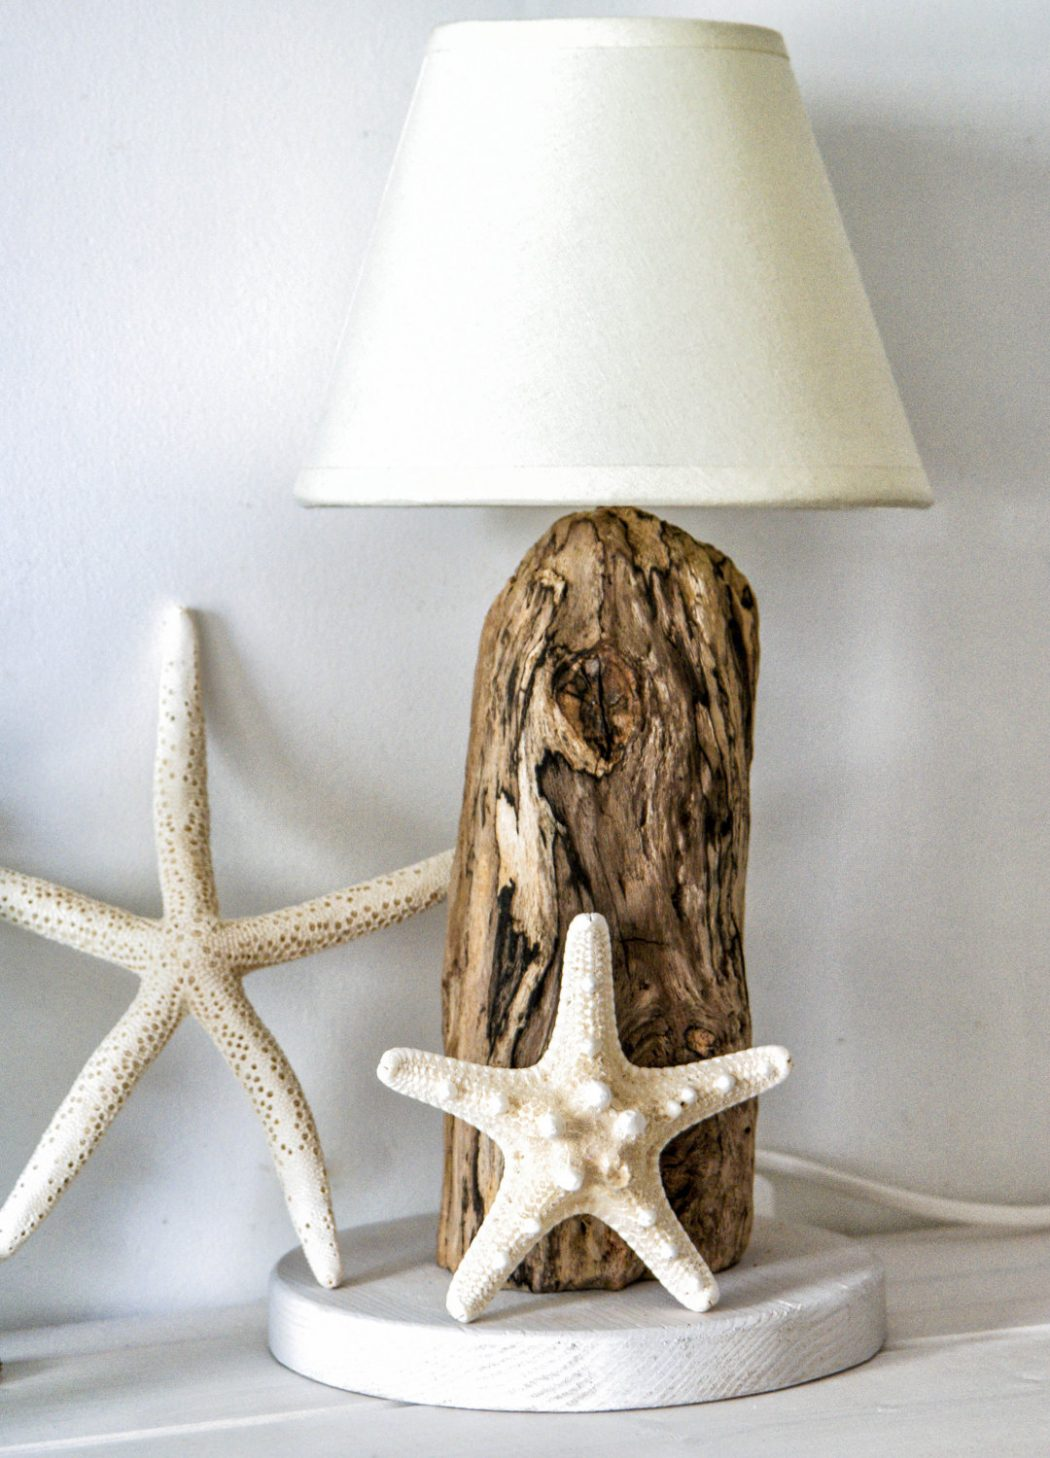 il_fullxfull.384723498_km6m Do You Like To Have A handmade Wooden Lamp?